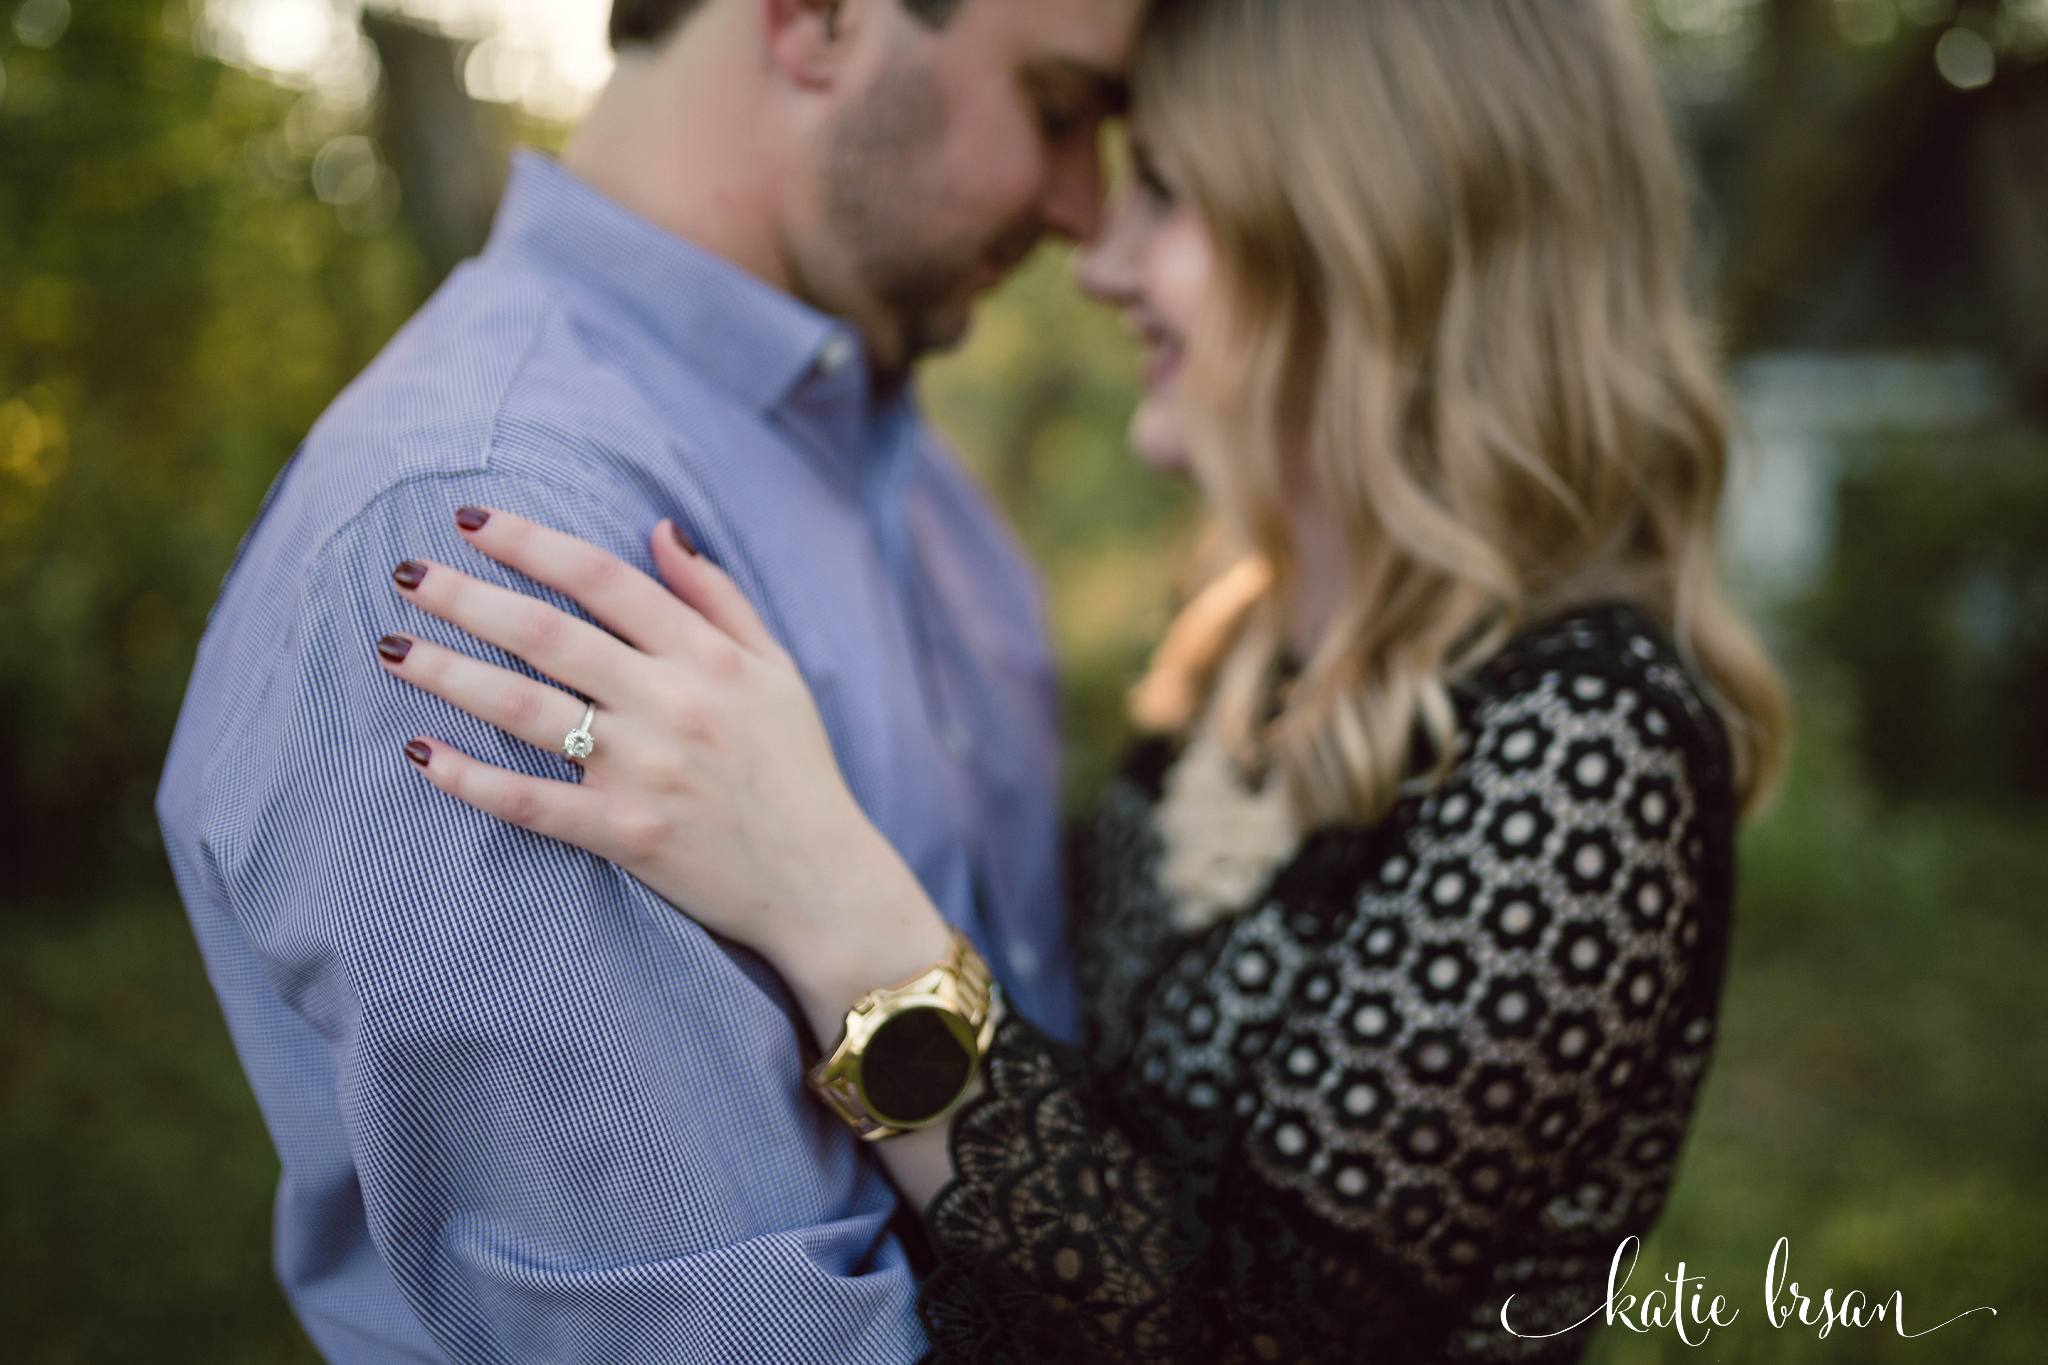 Mokena_EngagementSession_RuffledFeathers_Wedding_0946.jpg